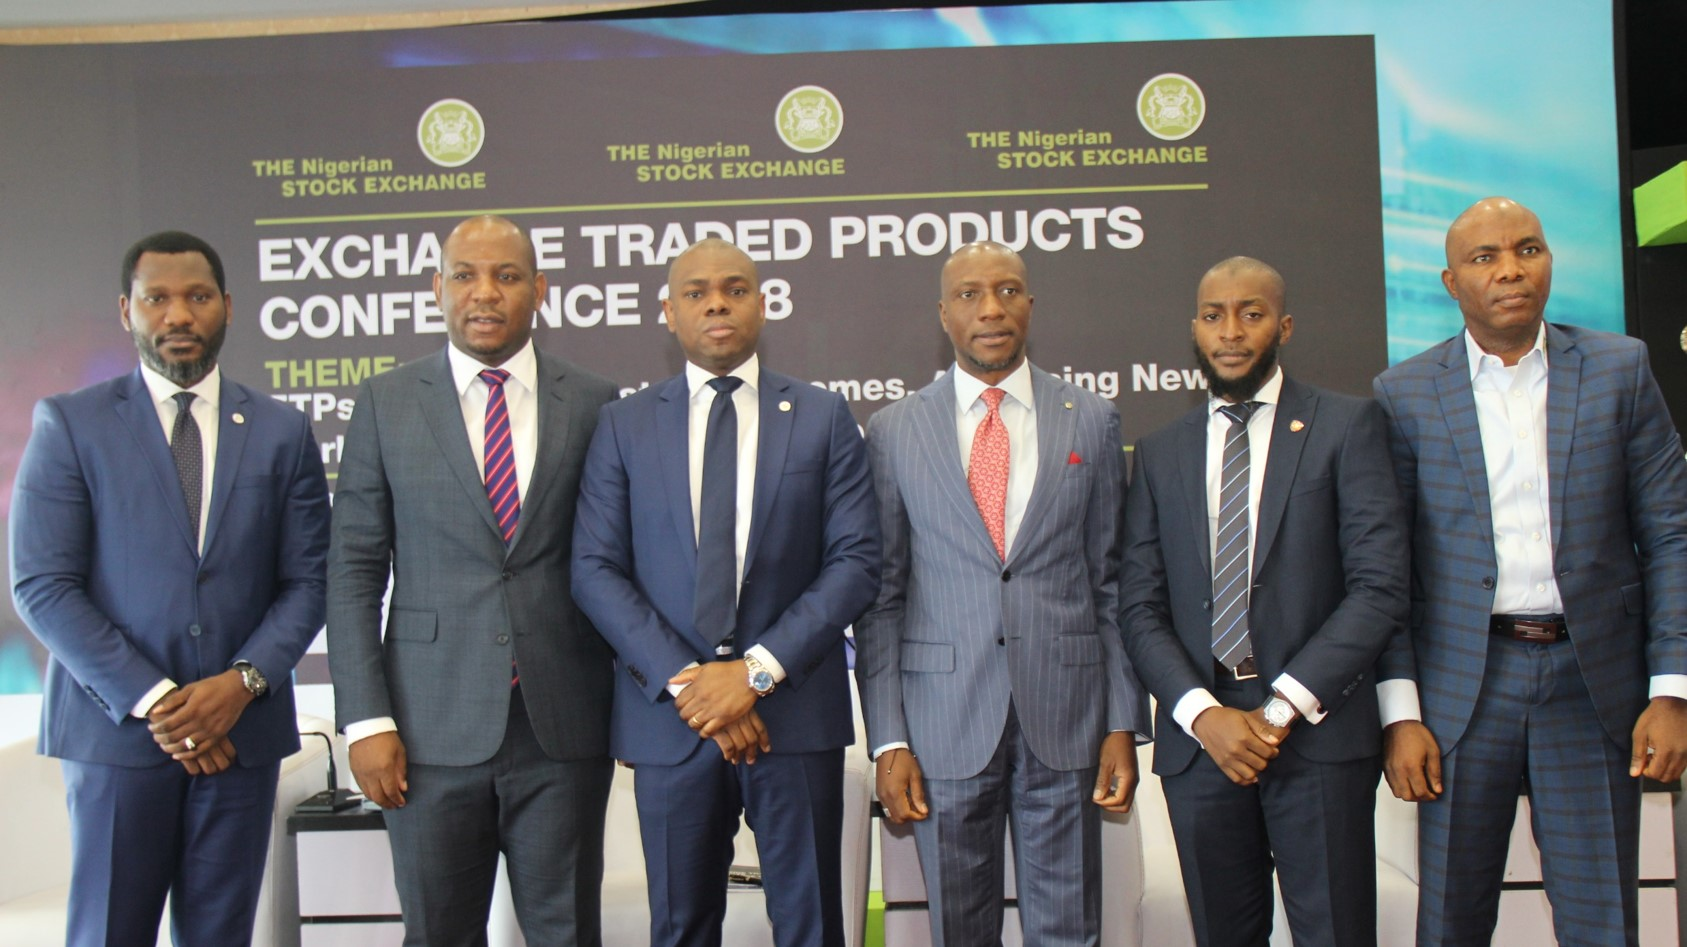 Photo News: Faces At NSE's 2018 Exchange Traded Products conference